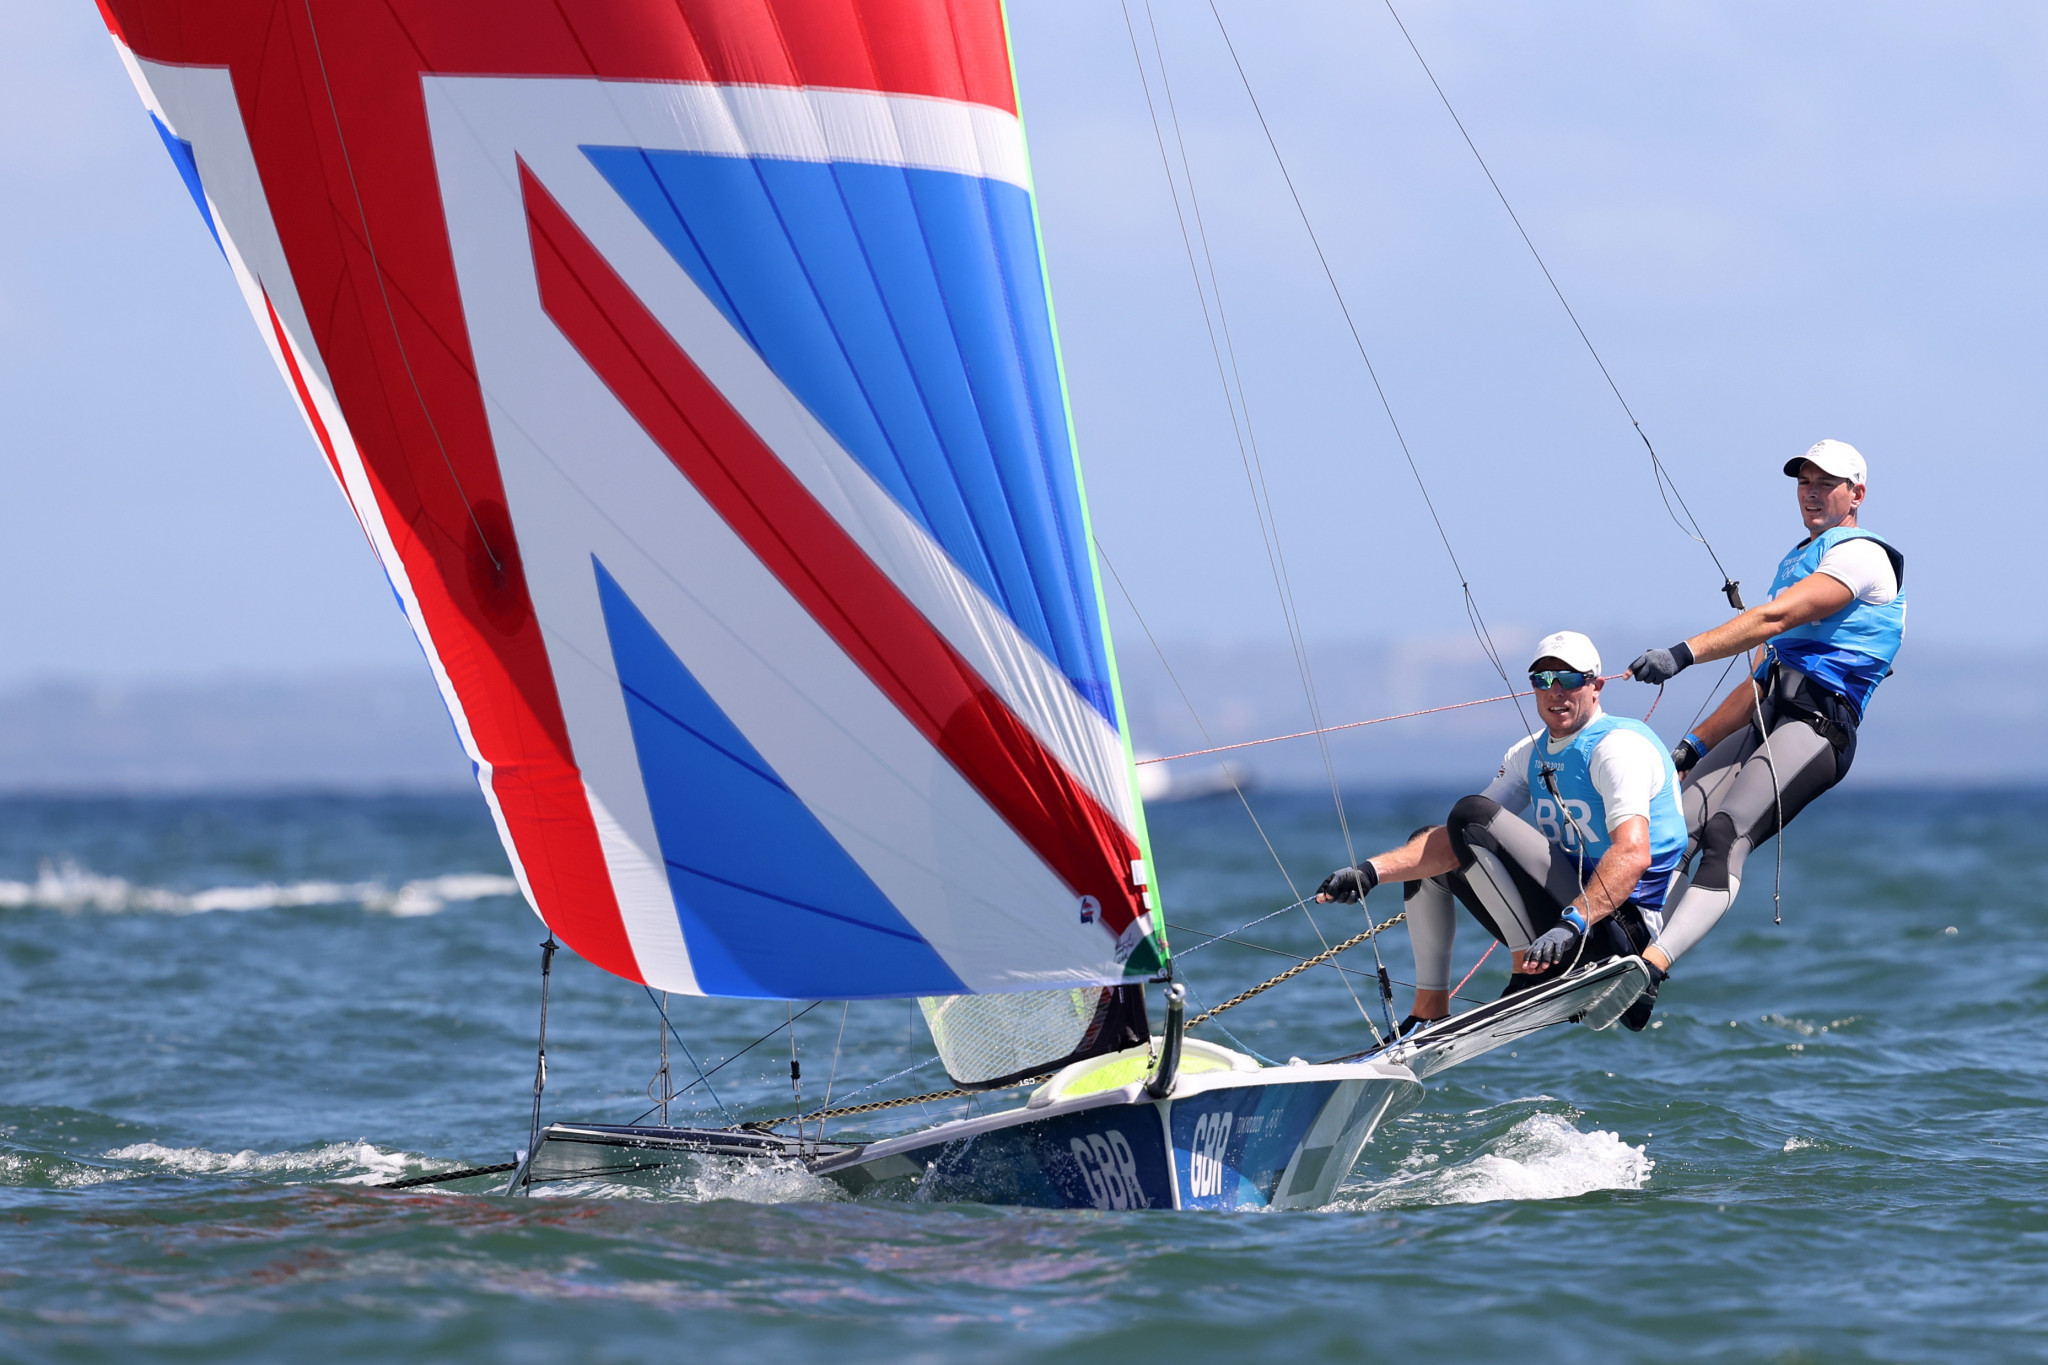 Britain's Dylan Fletcher and Stuart Bithell won the 49er title in dramatic circumstances  ©Getty Images